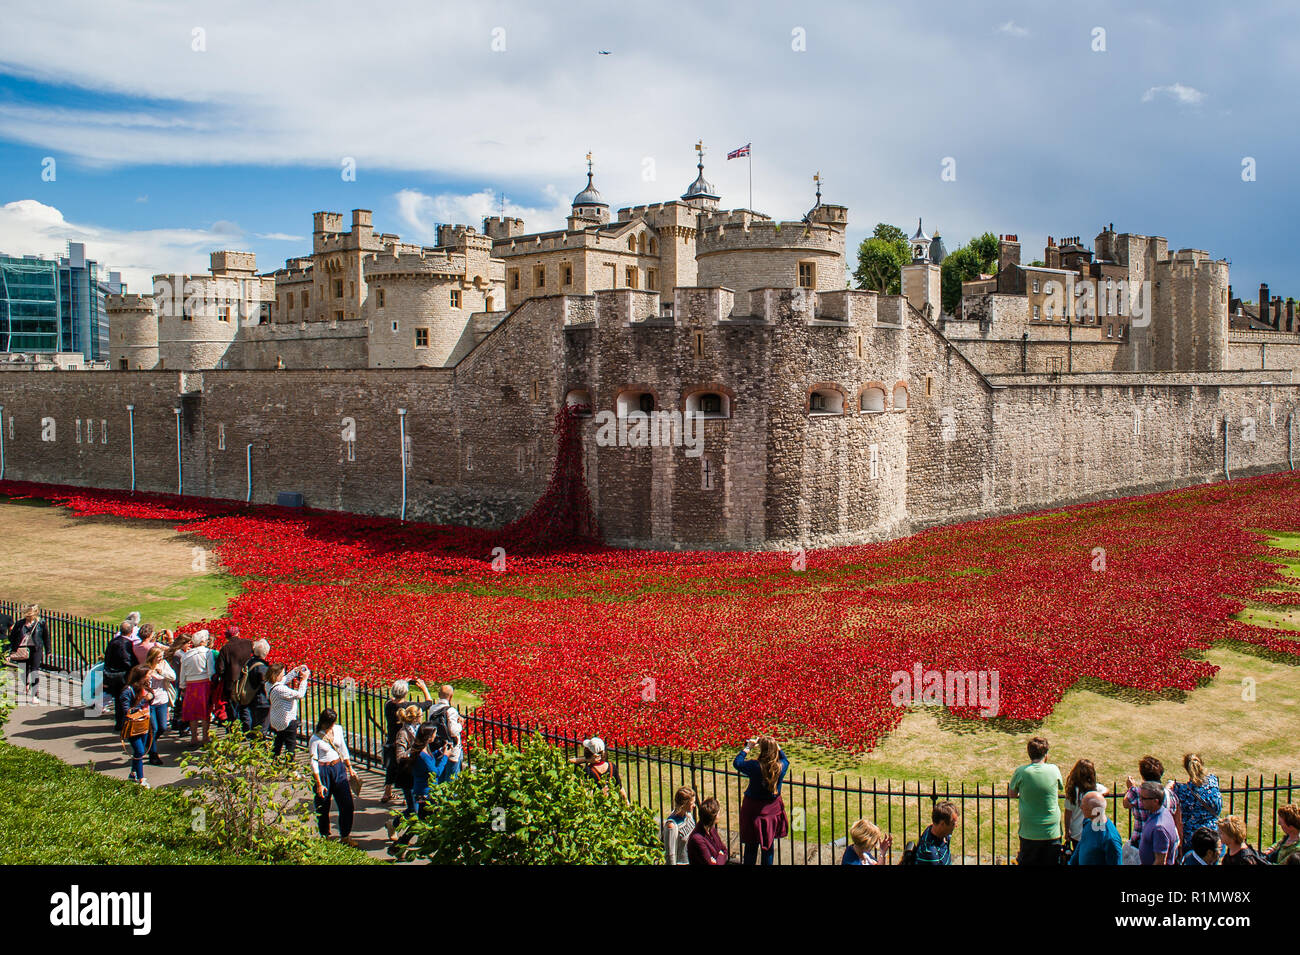 Thousands of handmade ceramic poppies fill the moat at The Tower of London to commemorate the fallen soldiers in the First World War WW1 - Stock Image